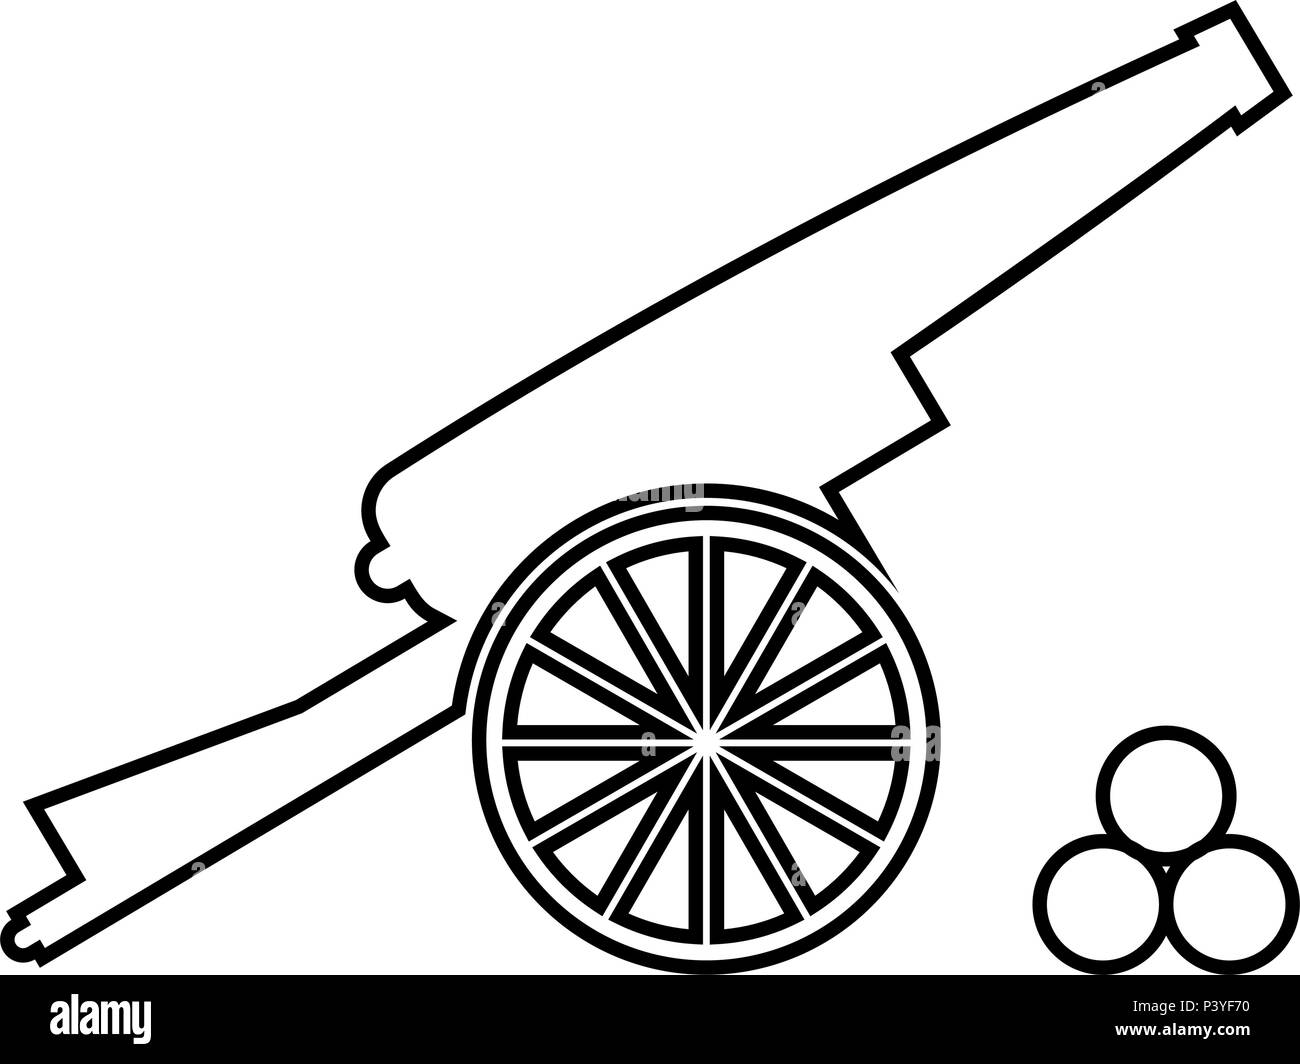 Medieval cannon firing cores icon black color vector I flat style simple image - Stock Image